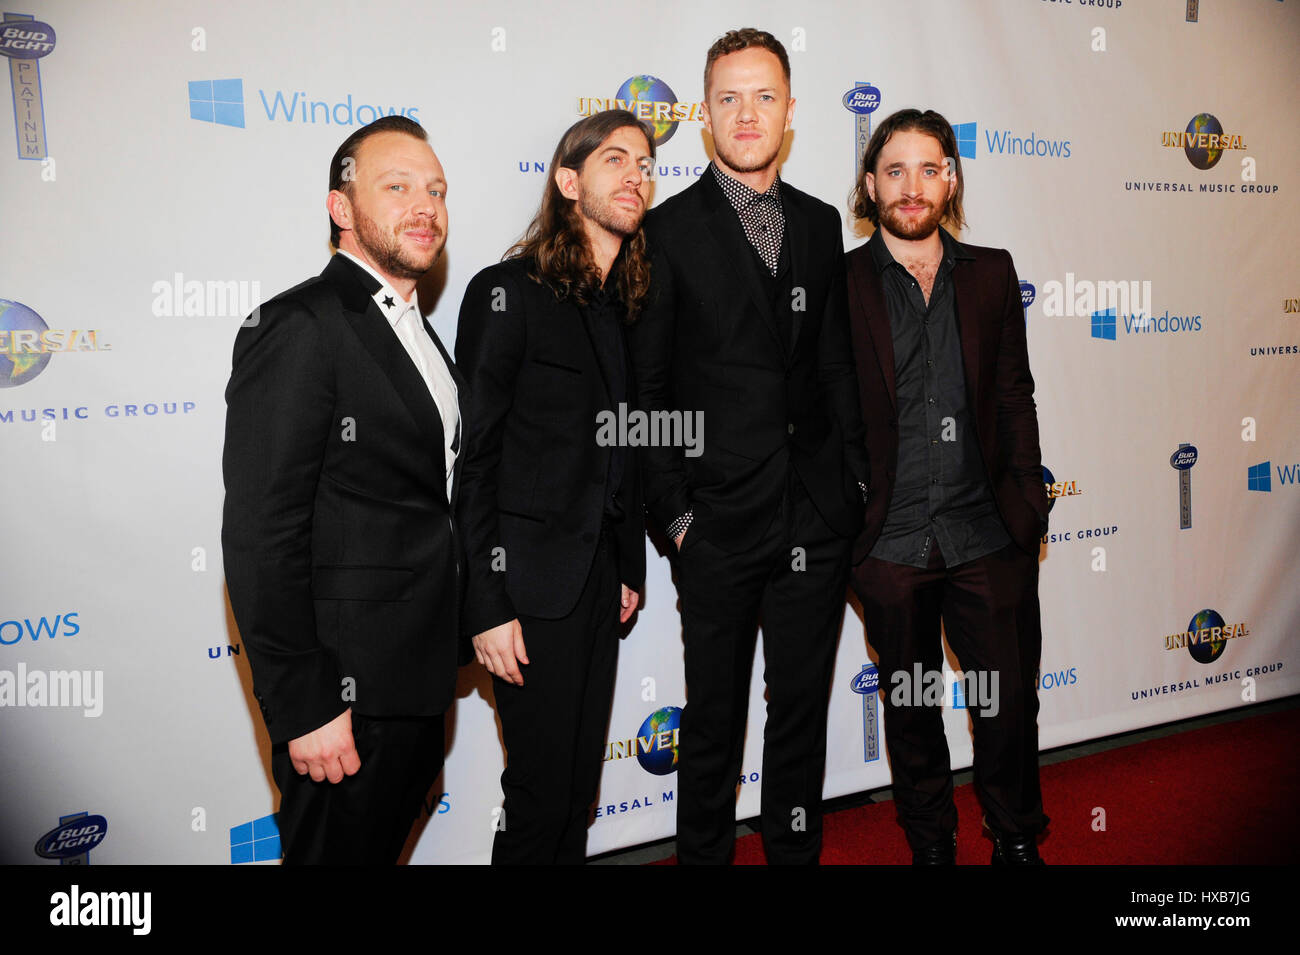 Imagine Dragons attend the Universal Music Group GRAMMY Afterparty at the Ace Hotel on January 26, 2014 in Los Angeles, - Stock Image